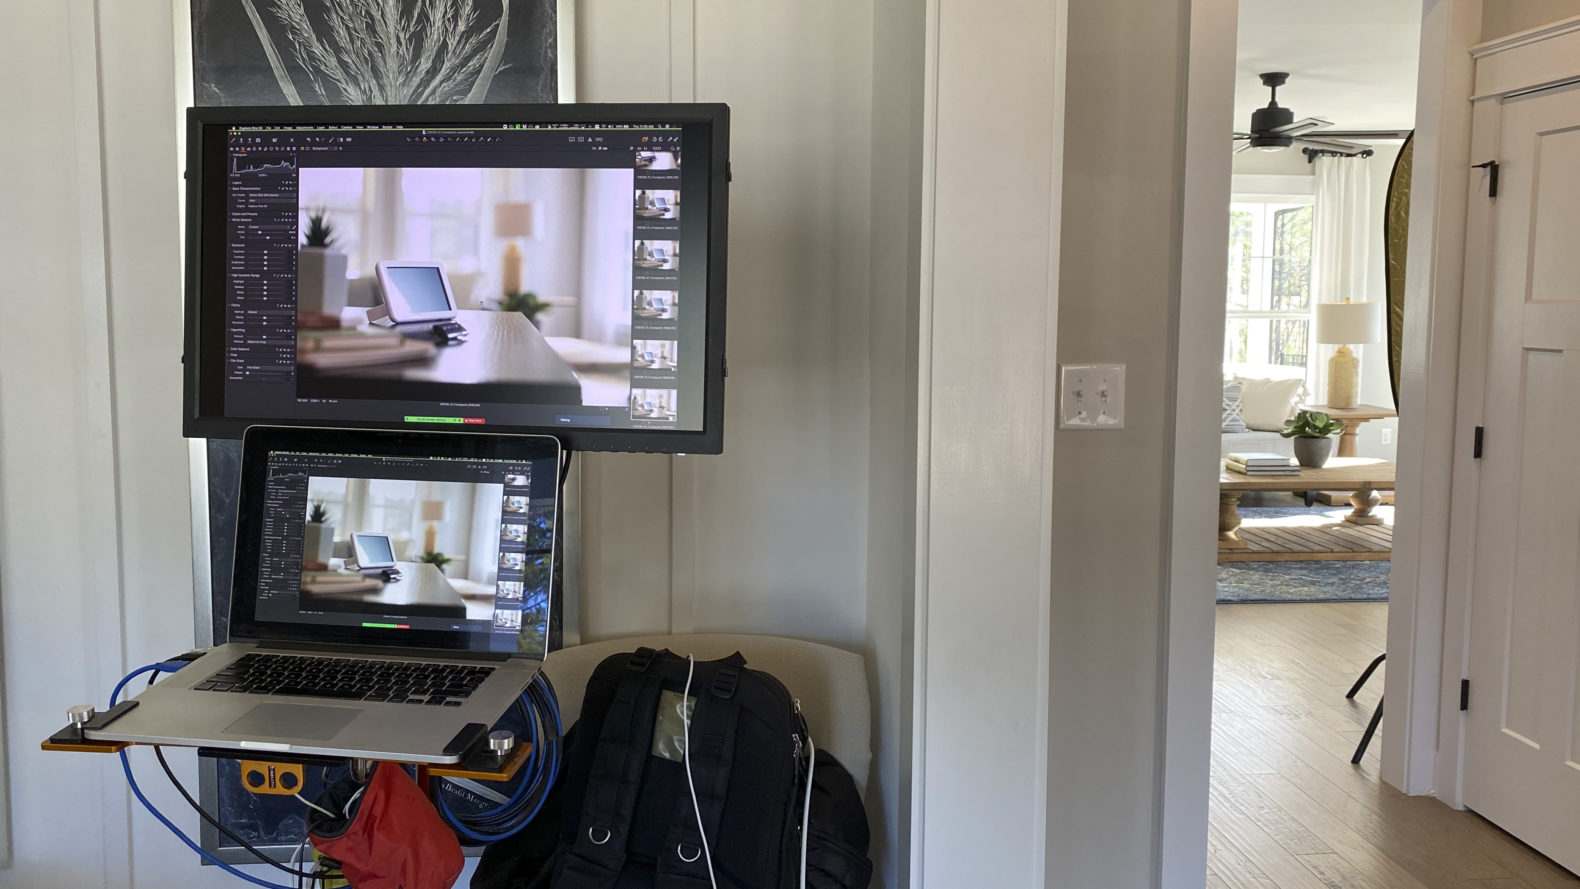 photography equipment and technology in a home setting